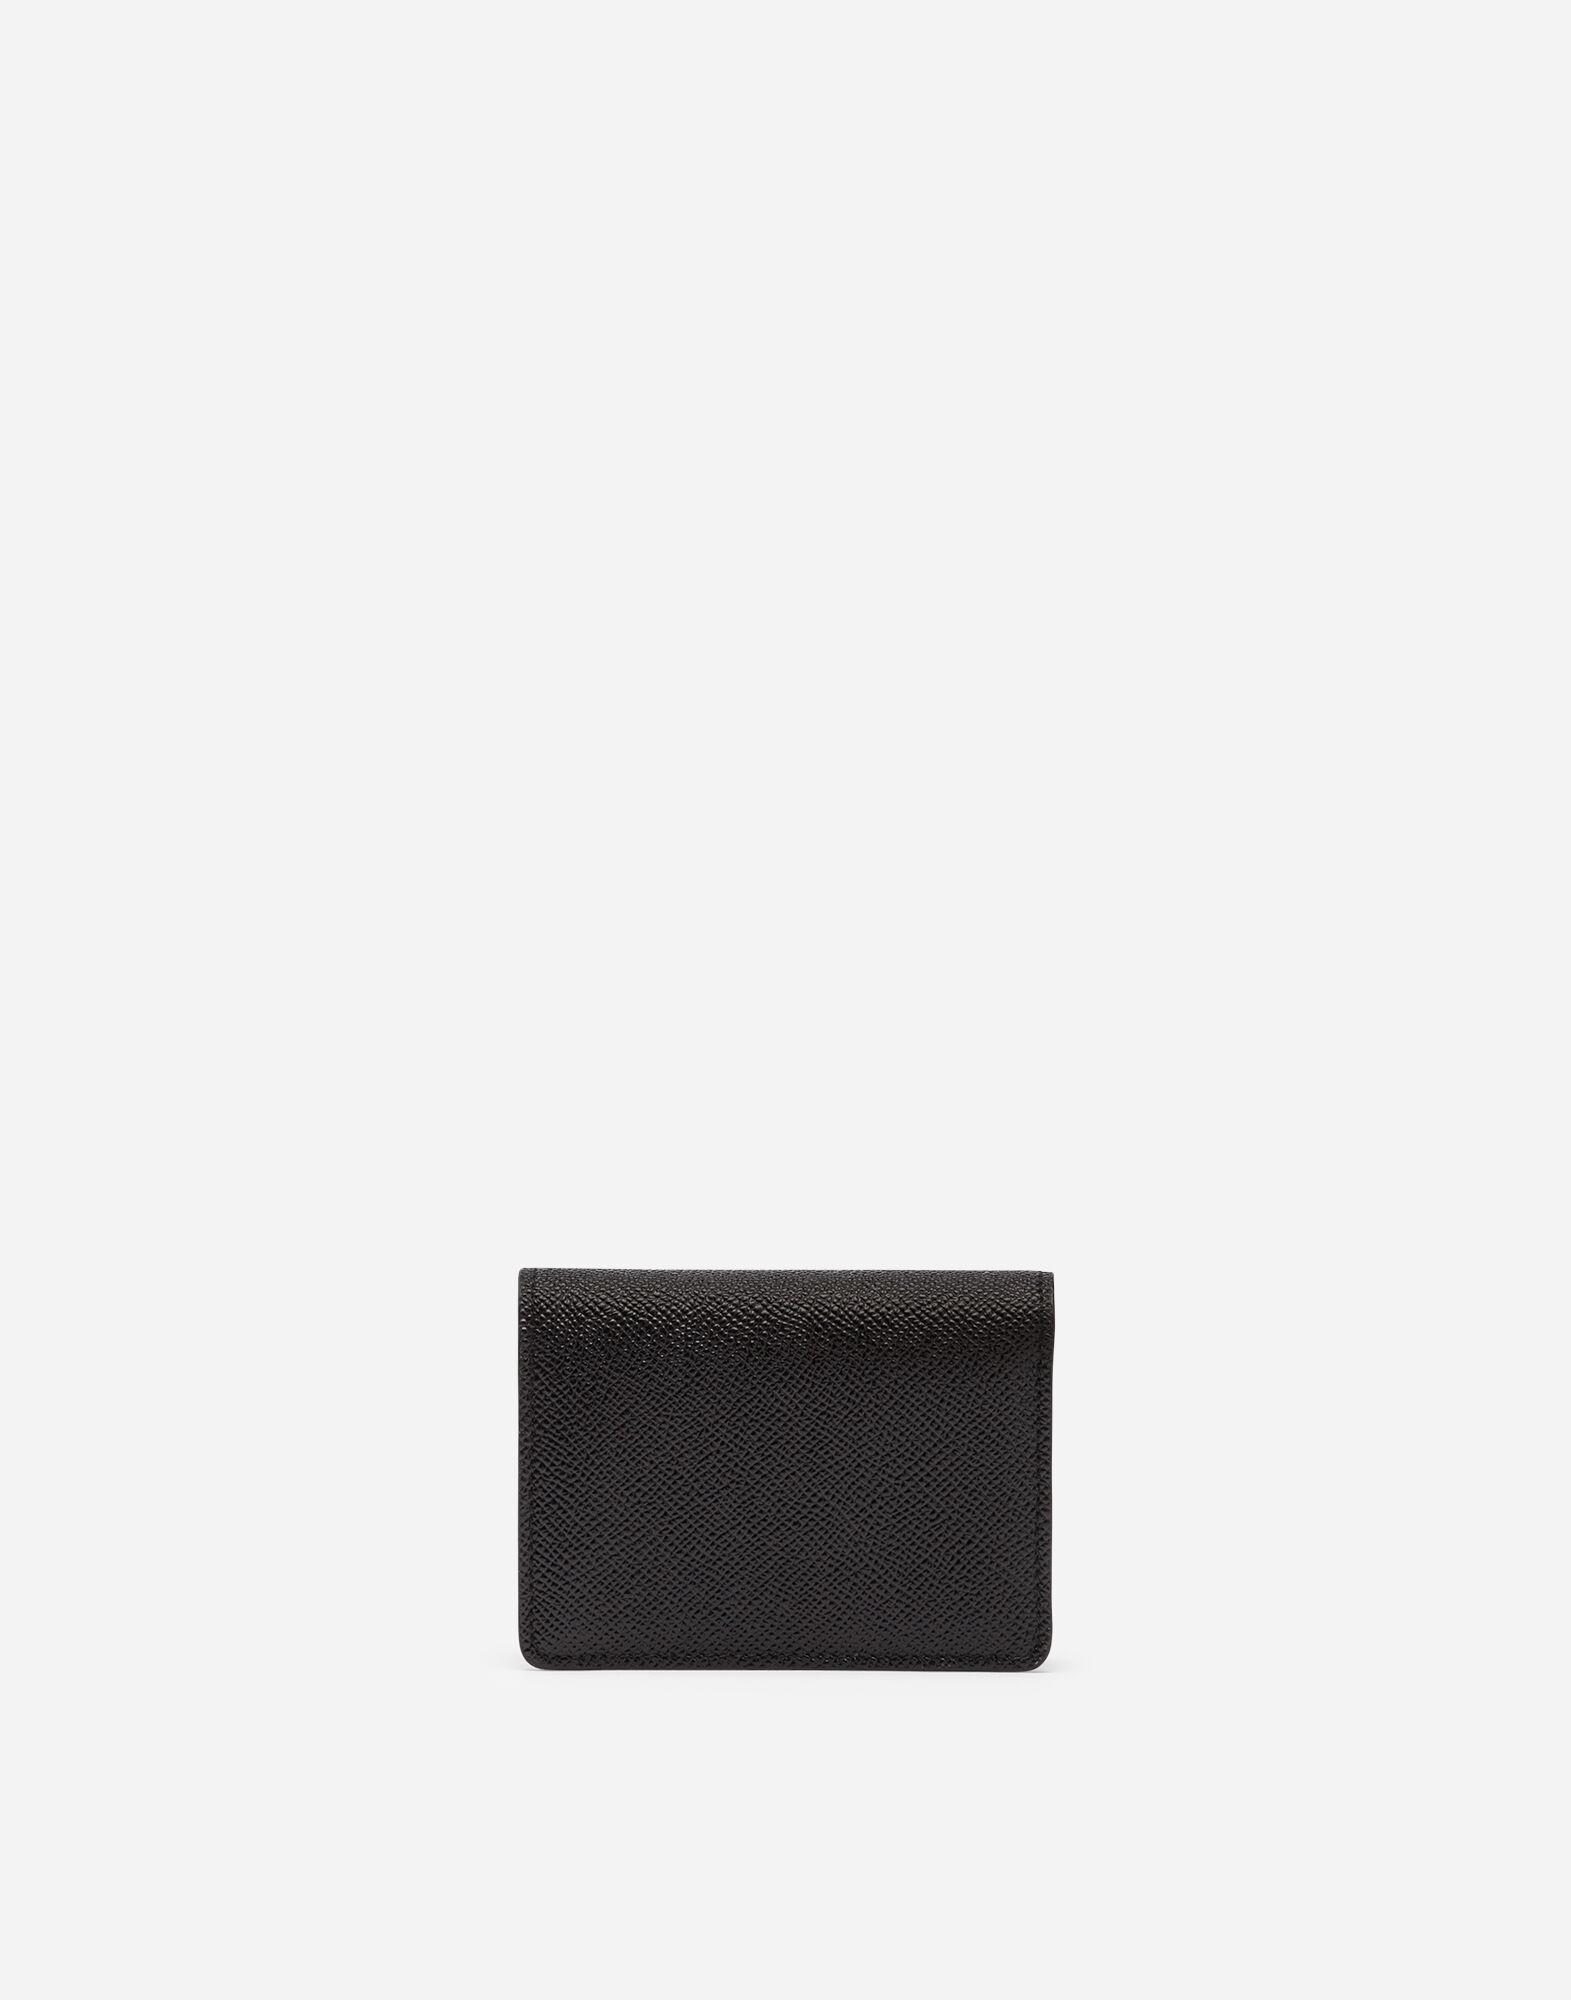 Card holder in laminate dauphine calfskin with logo crystals 2